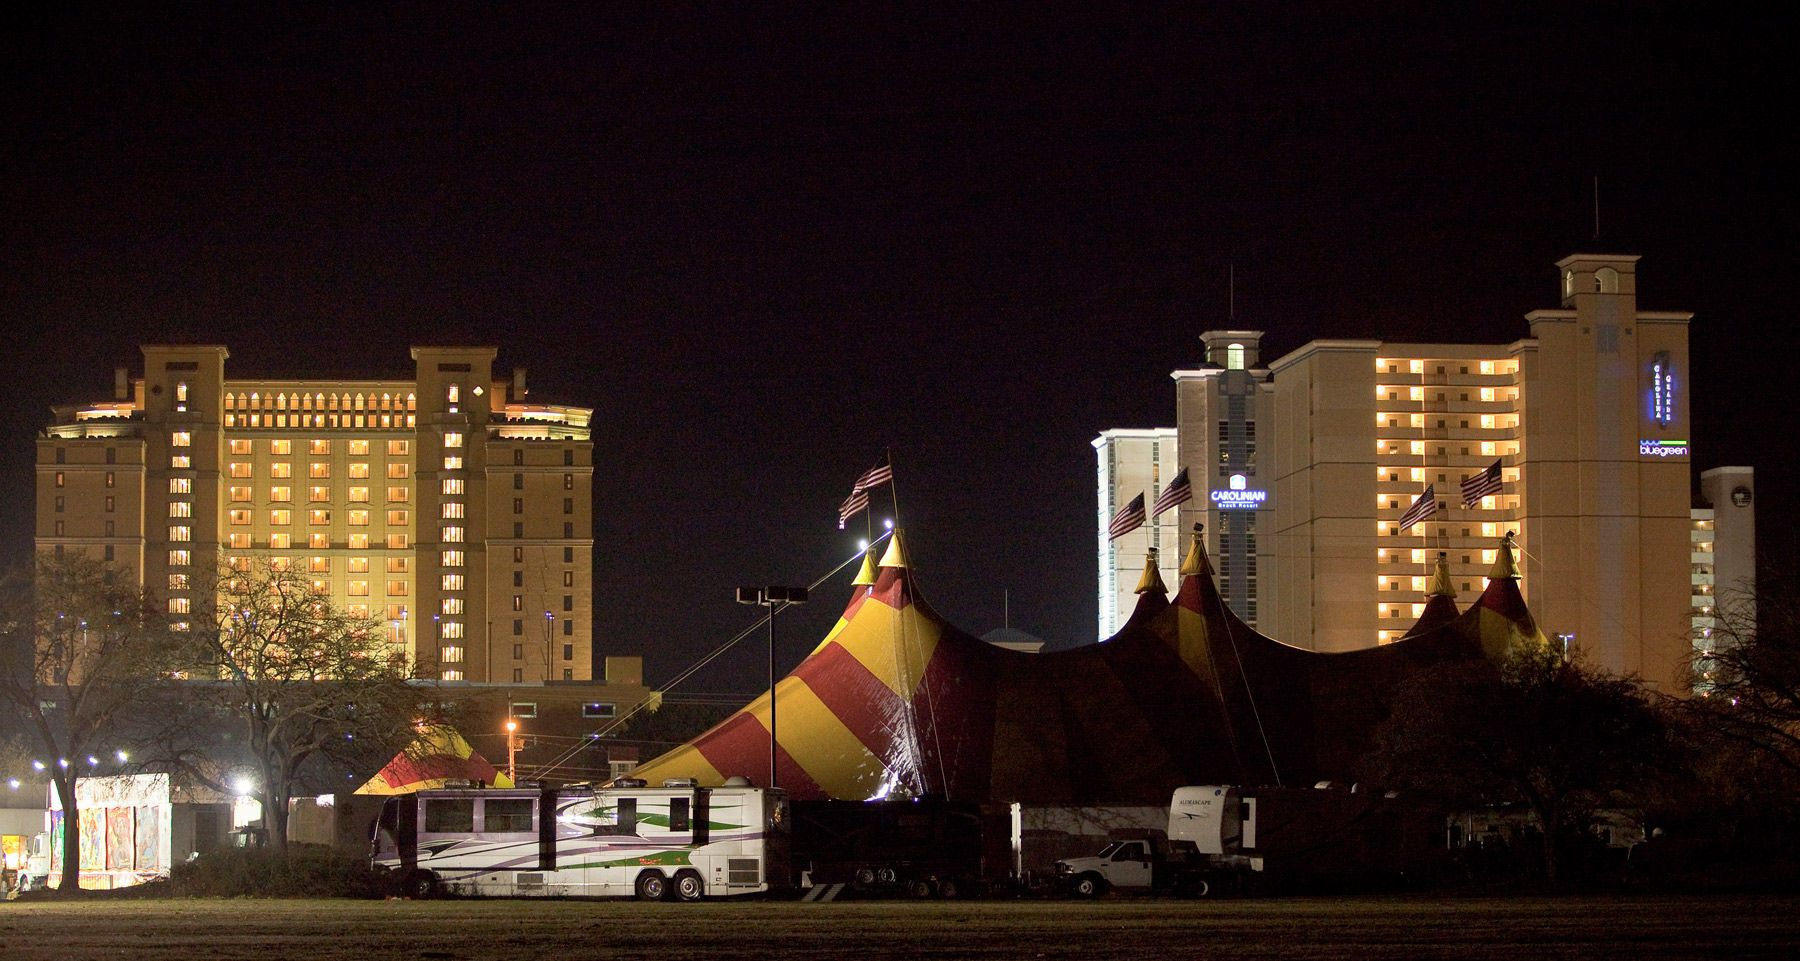 Cole Brothers Circus of the Stars tent city is staged with a backdrop of ocean resorts in Myrtle Beach, South Carolina March 31, 2013. Traveling circuses such as the Cole Brothers Circus of the Stars, complete with it's traveling big top tent, set up their tent city in smaller markets all along the East Coast of the United States as they aim to bring the circus to rural areas. The Cole Brothers Circus, now in its 129th edition, travels to 100 cities in 20-25 states and stages 250 shows a year. For Reuters